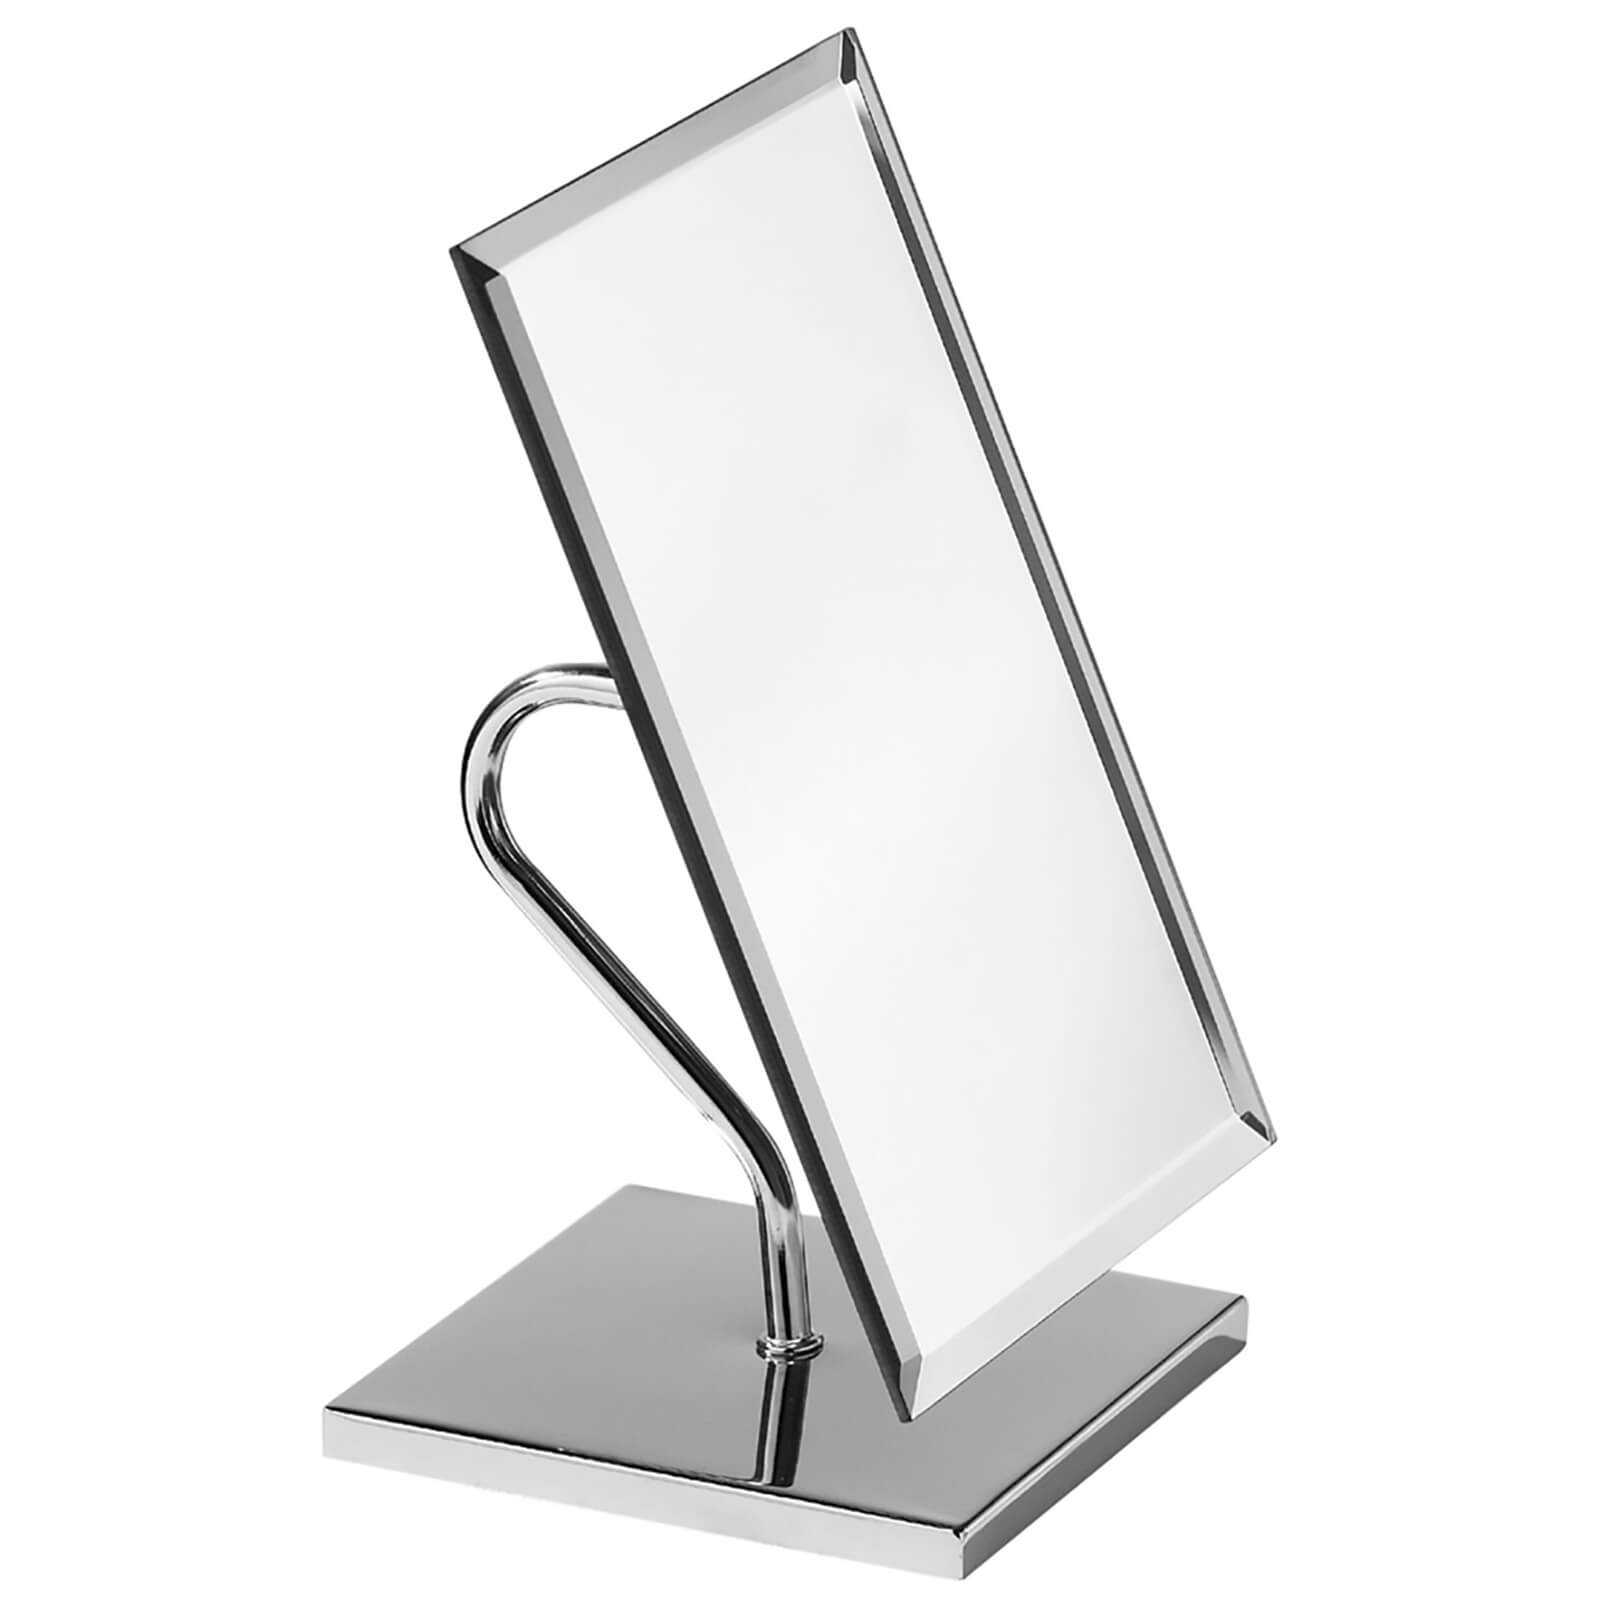 Premier Housewares Adjustable Rectangular Table Mirror - Chrome Frame